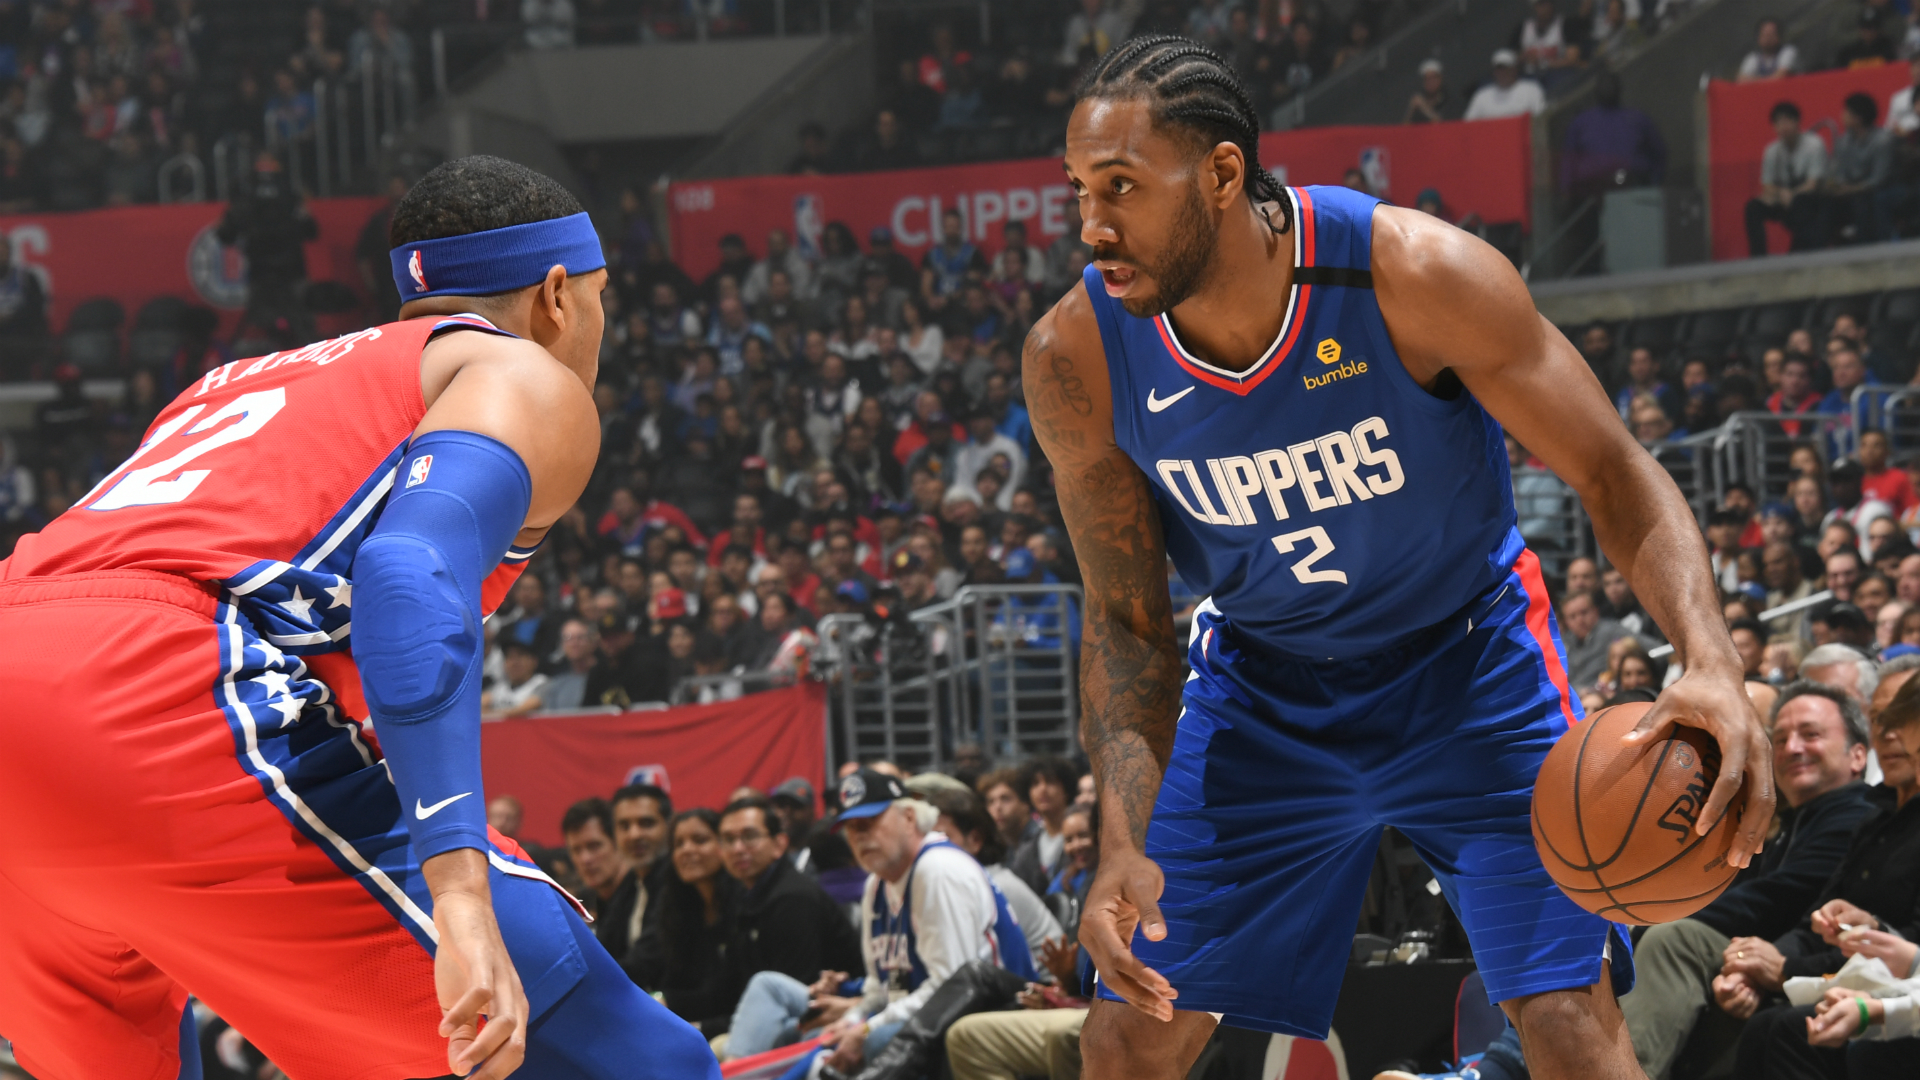 76ers @ Clippers